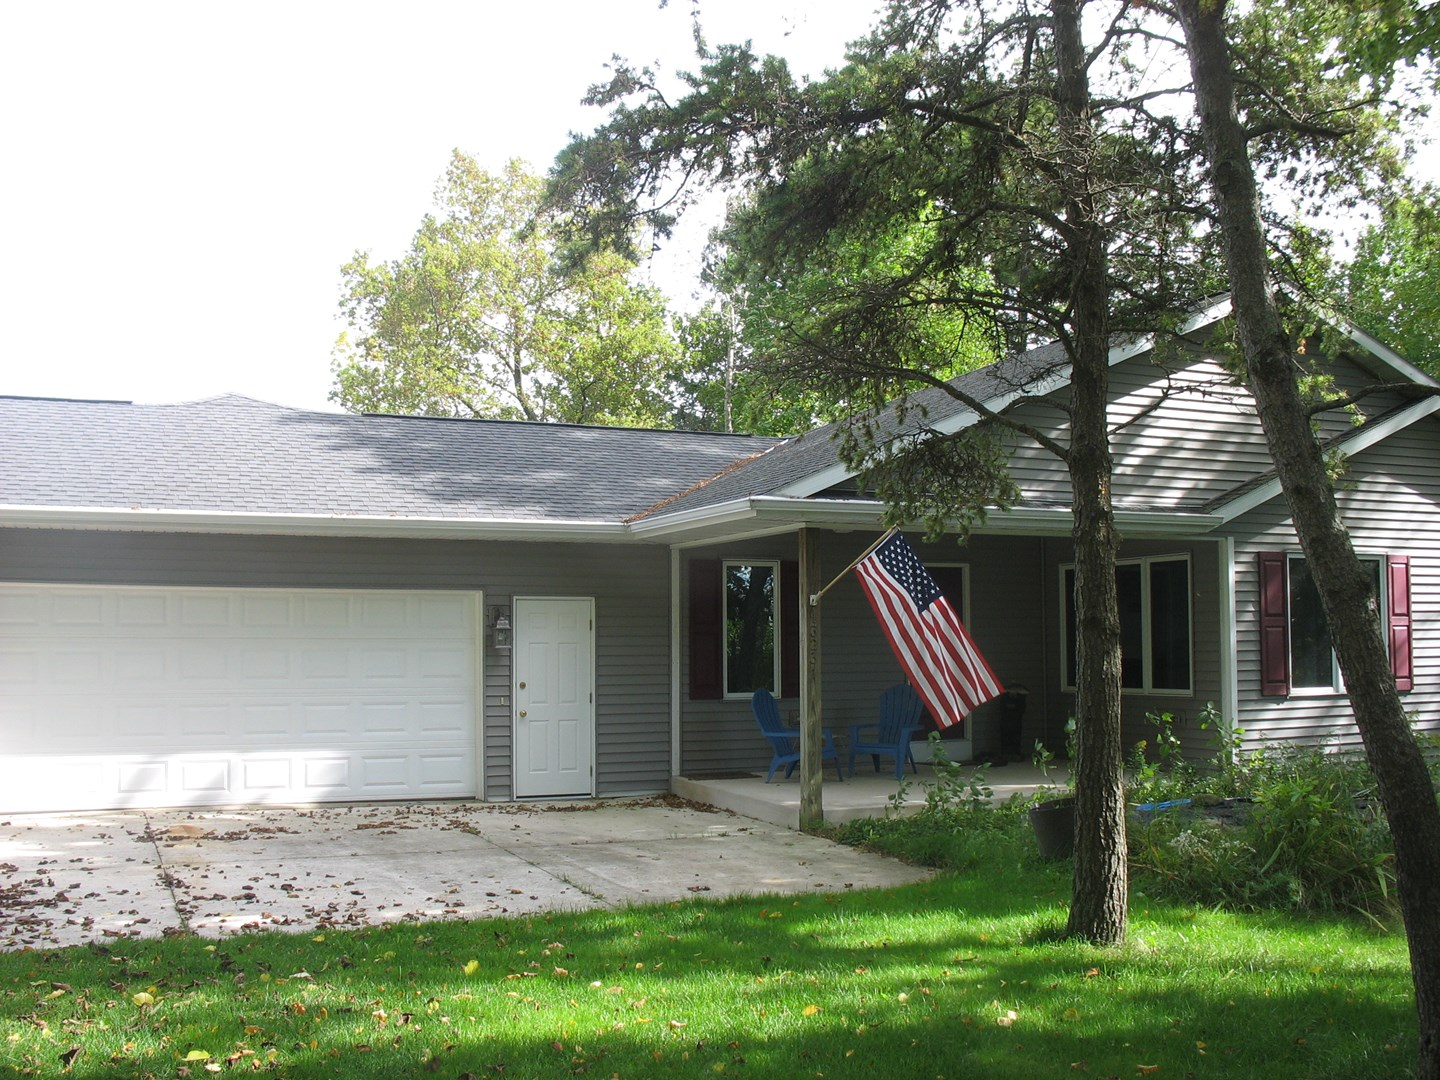 13231 Lakeshore Rd, Two Rivers, WI 54241